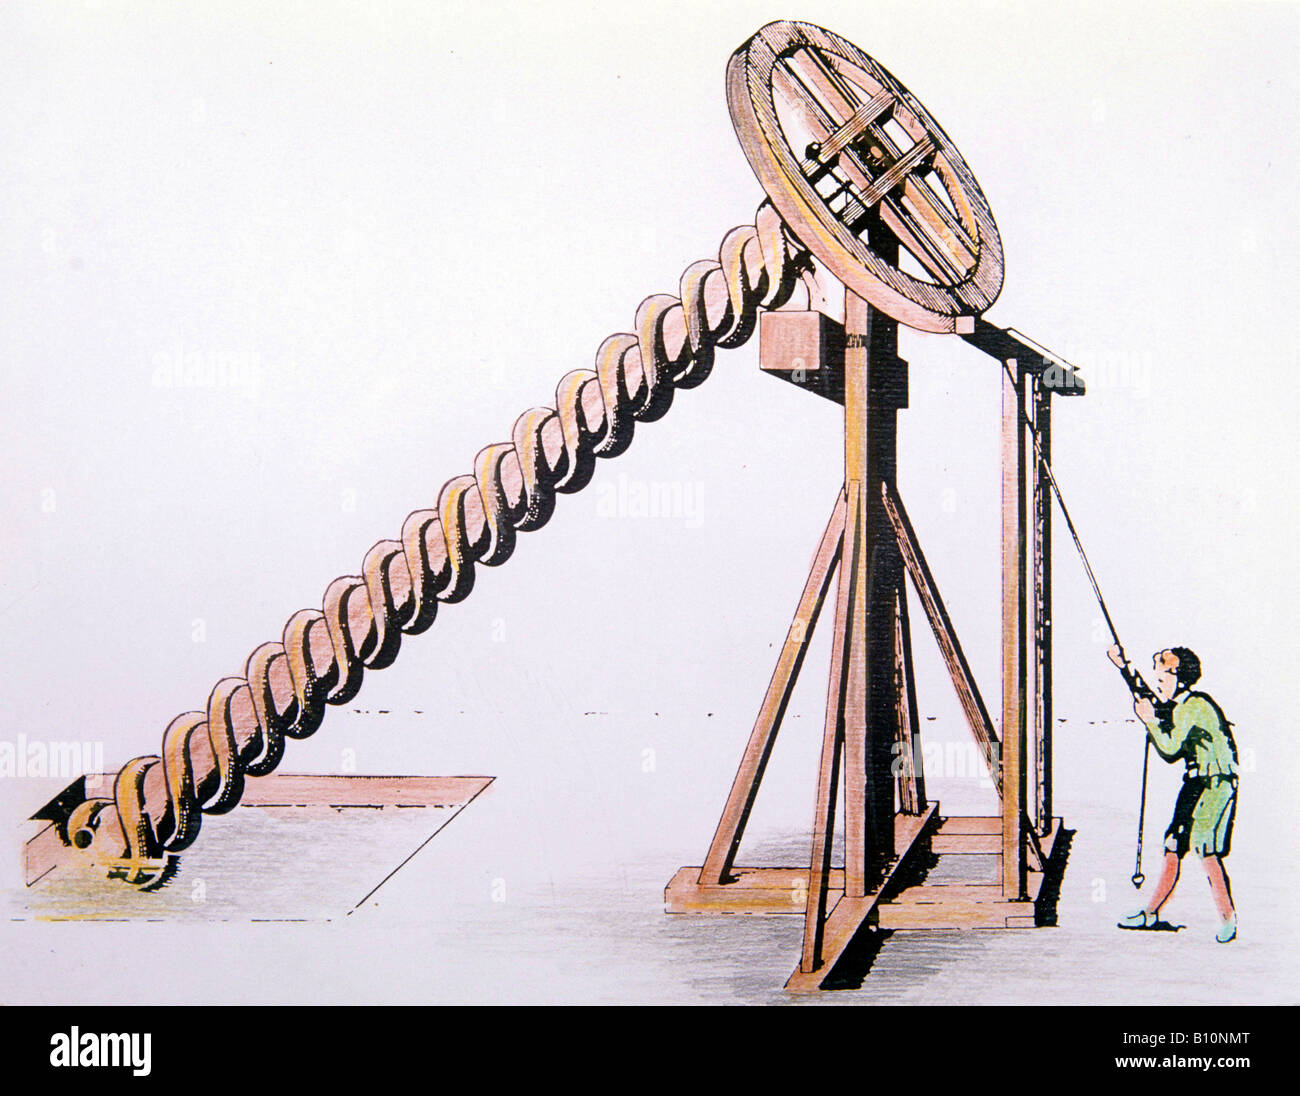 All About Archimedes  |Ancient Archimedes Screw